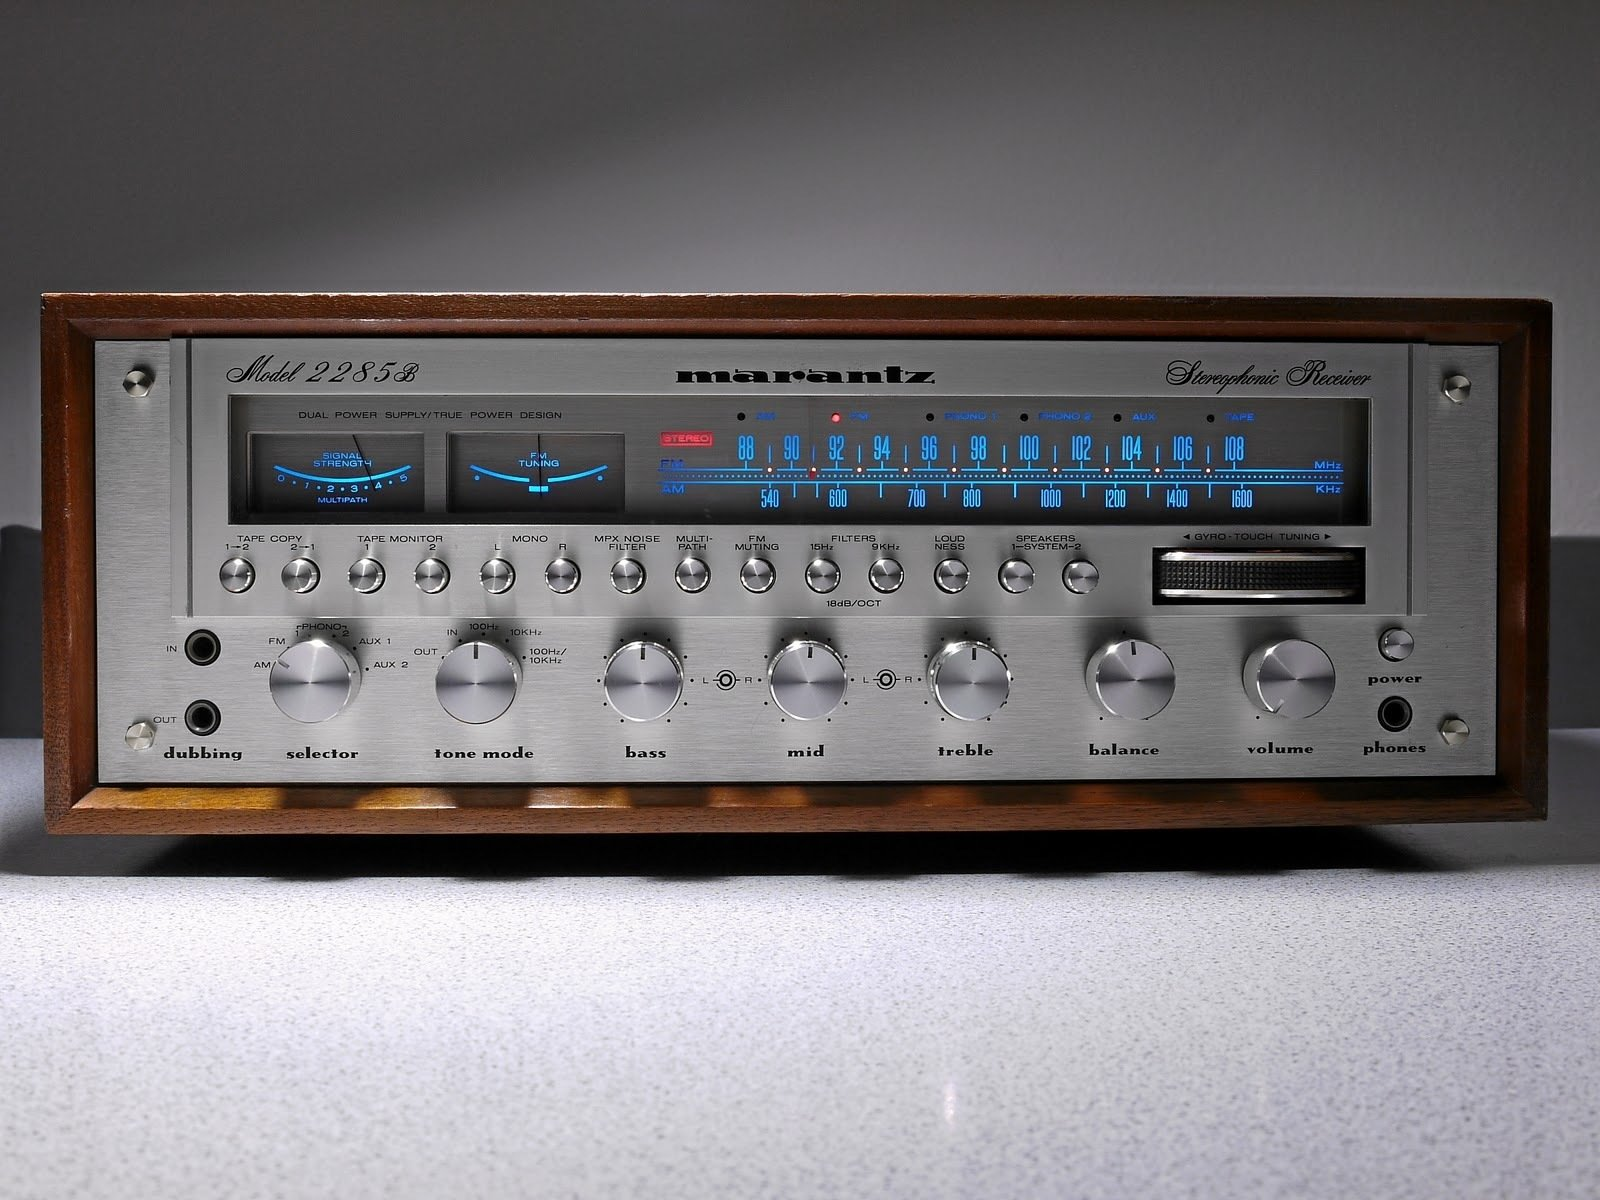 Marantz 2285B Receiver was sold from 1977 to  1980 for around $670.00.  With it's solid knobs, dials and buttons, wood casing, needles, and electric blue lights, the classic Marantz equipment sounded good and looked even better. #stereo #audio  Sound Style